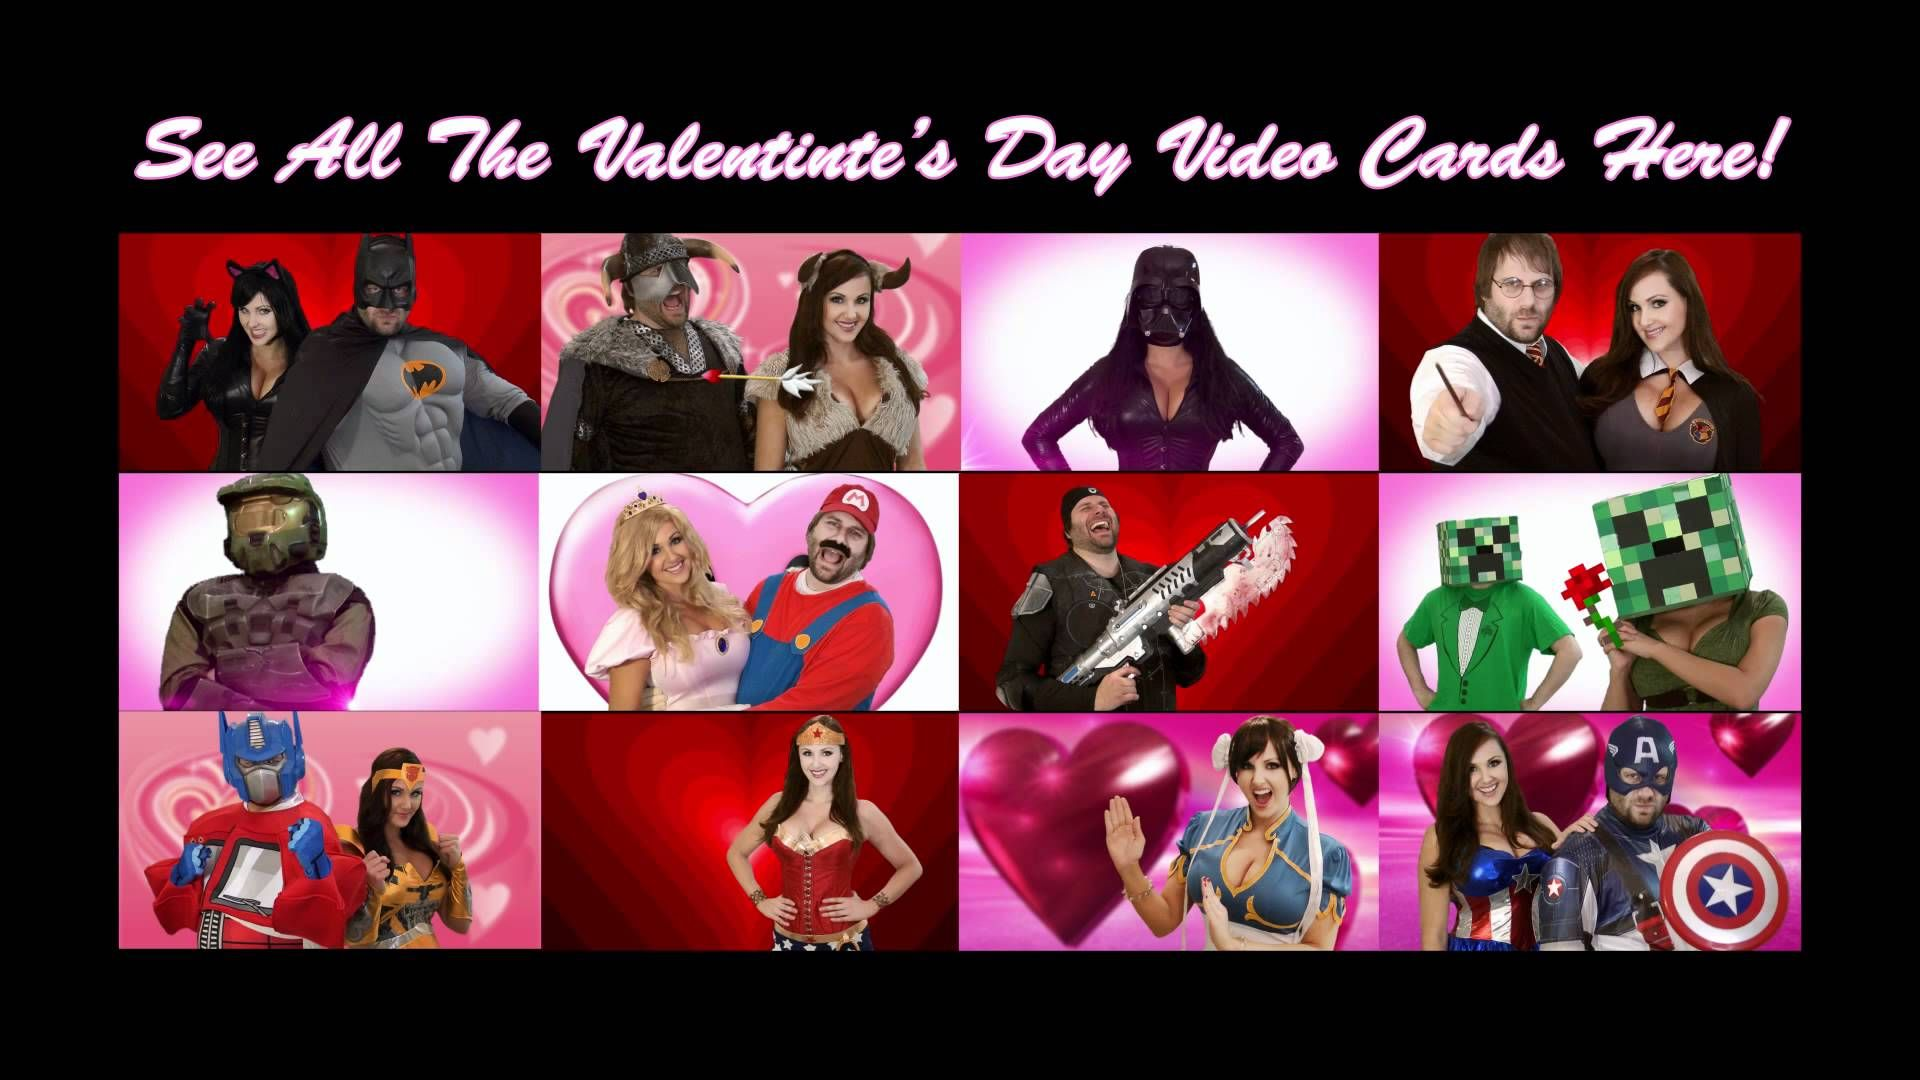 Catwoman Valentines Day Video Card Xtragames4free – Valentine Day Video Card